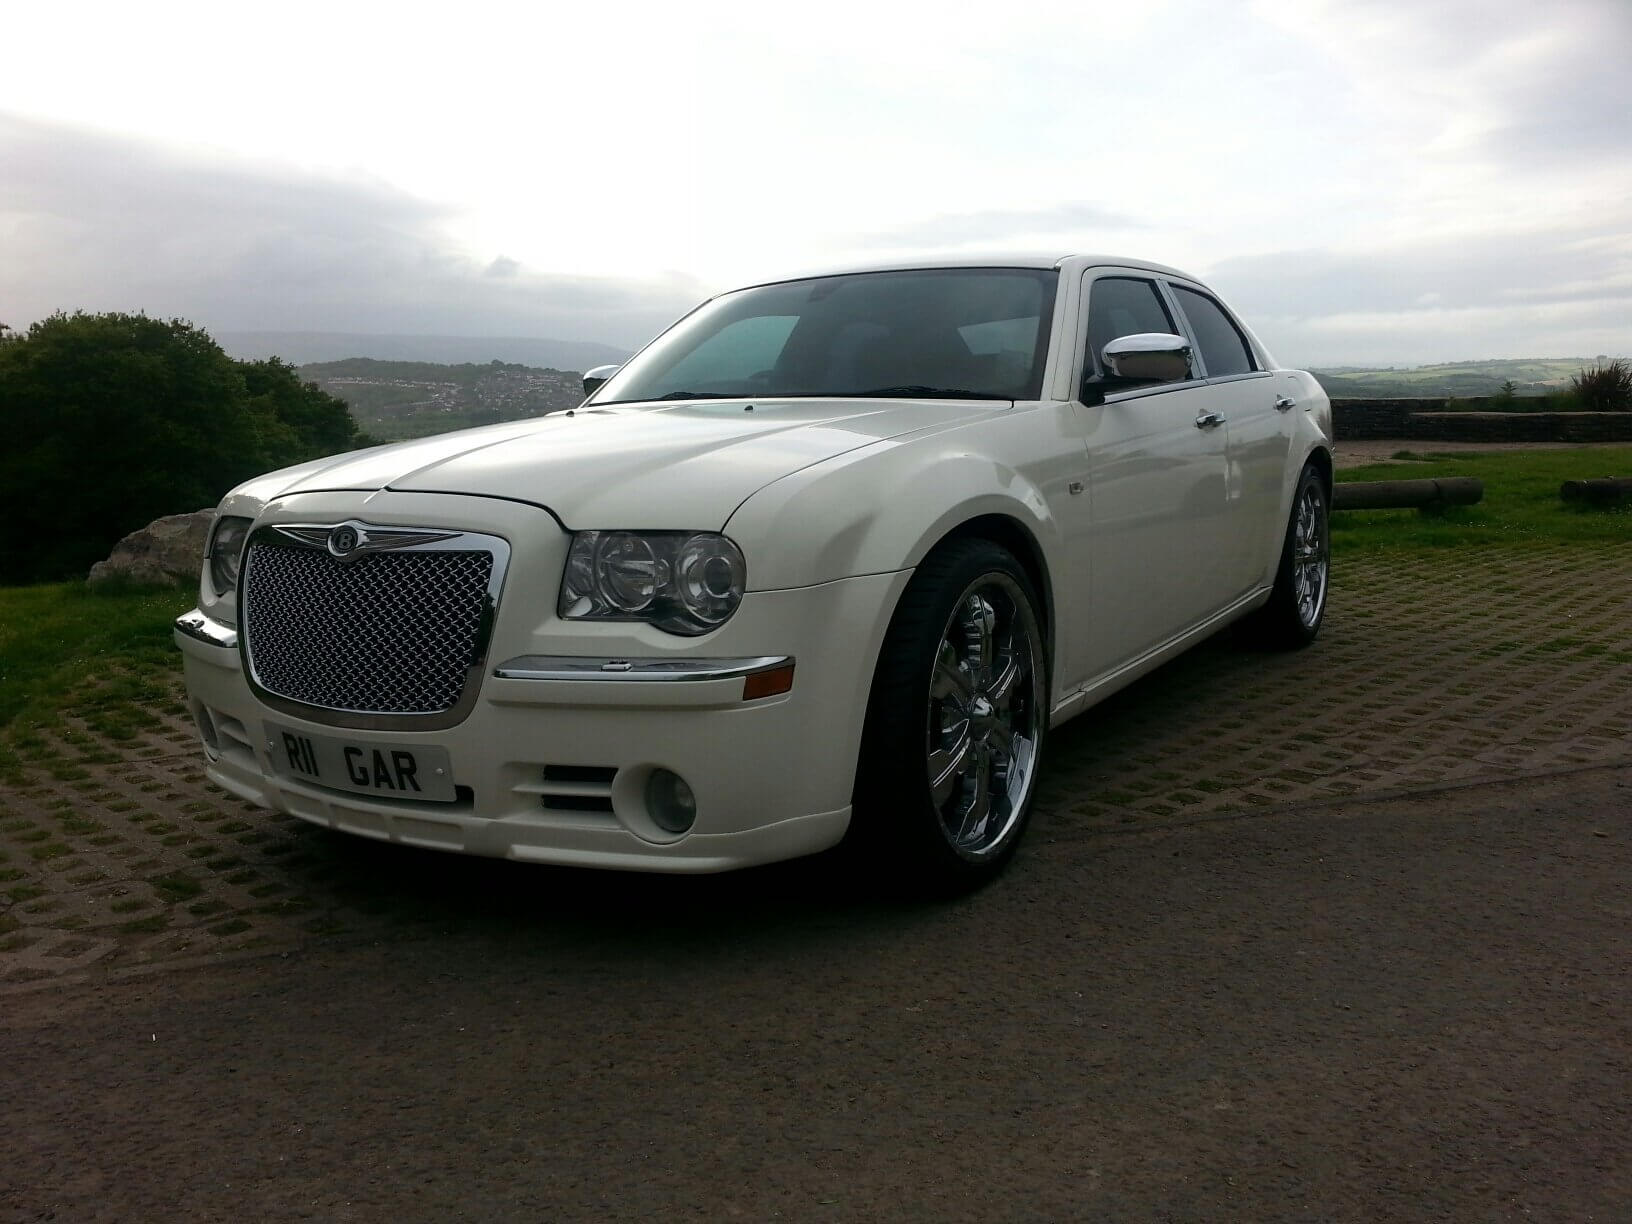 chrysler 300c baby bentley limousine and limo hire cardiff. Black Bedroom Furniture Sets. Home Design Ideas